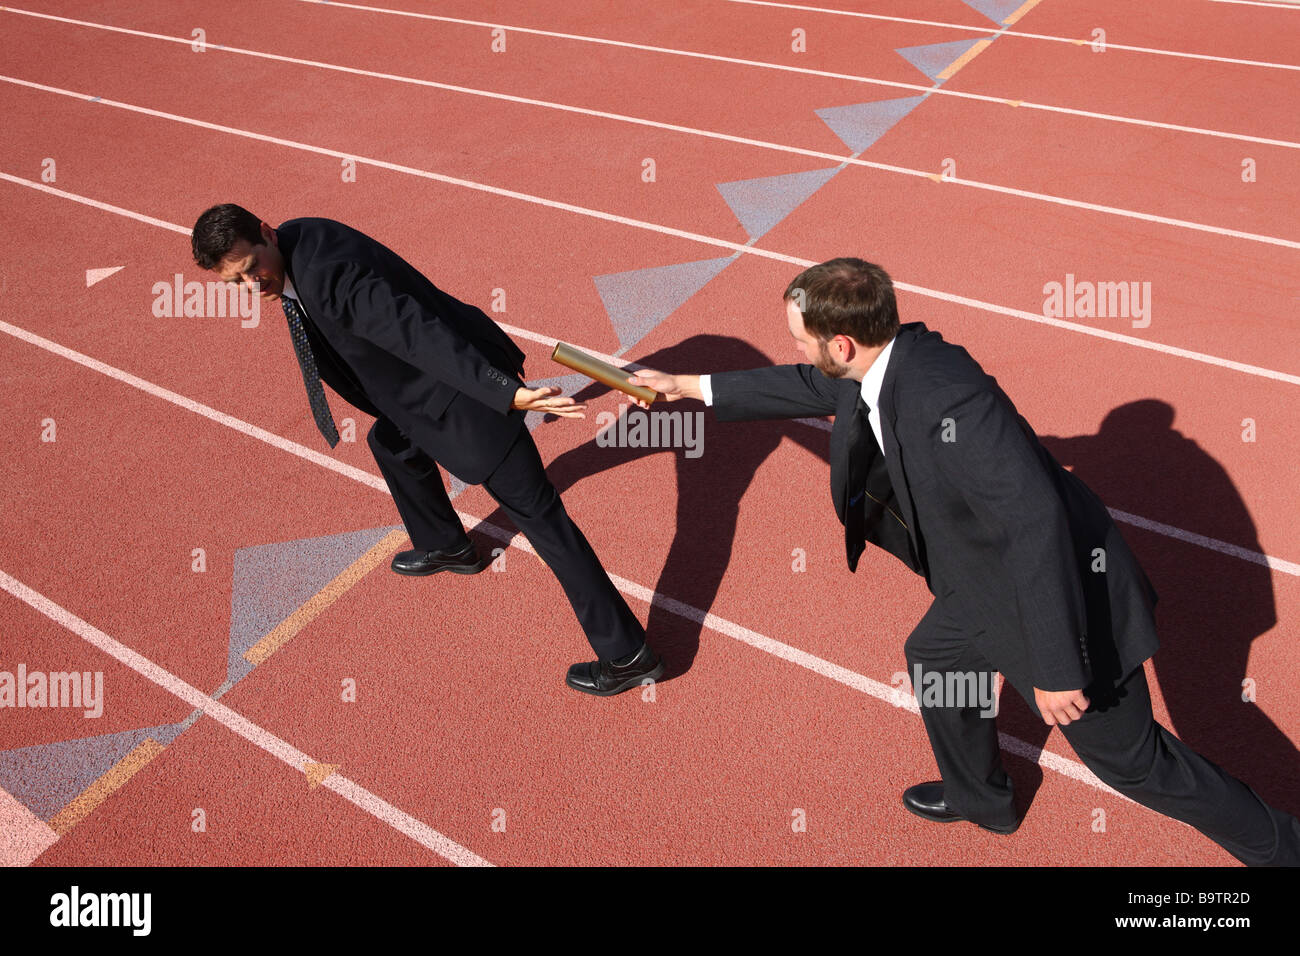 Businessmen hand baton in track race - Stock Image